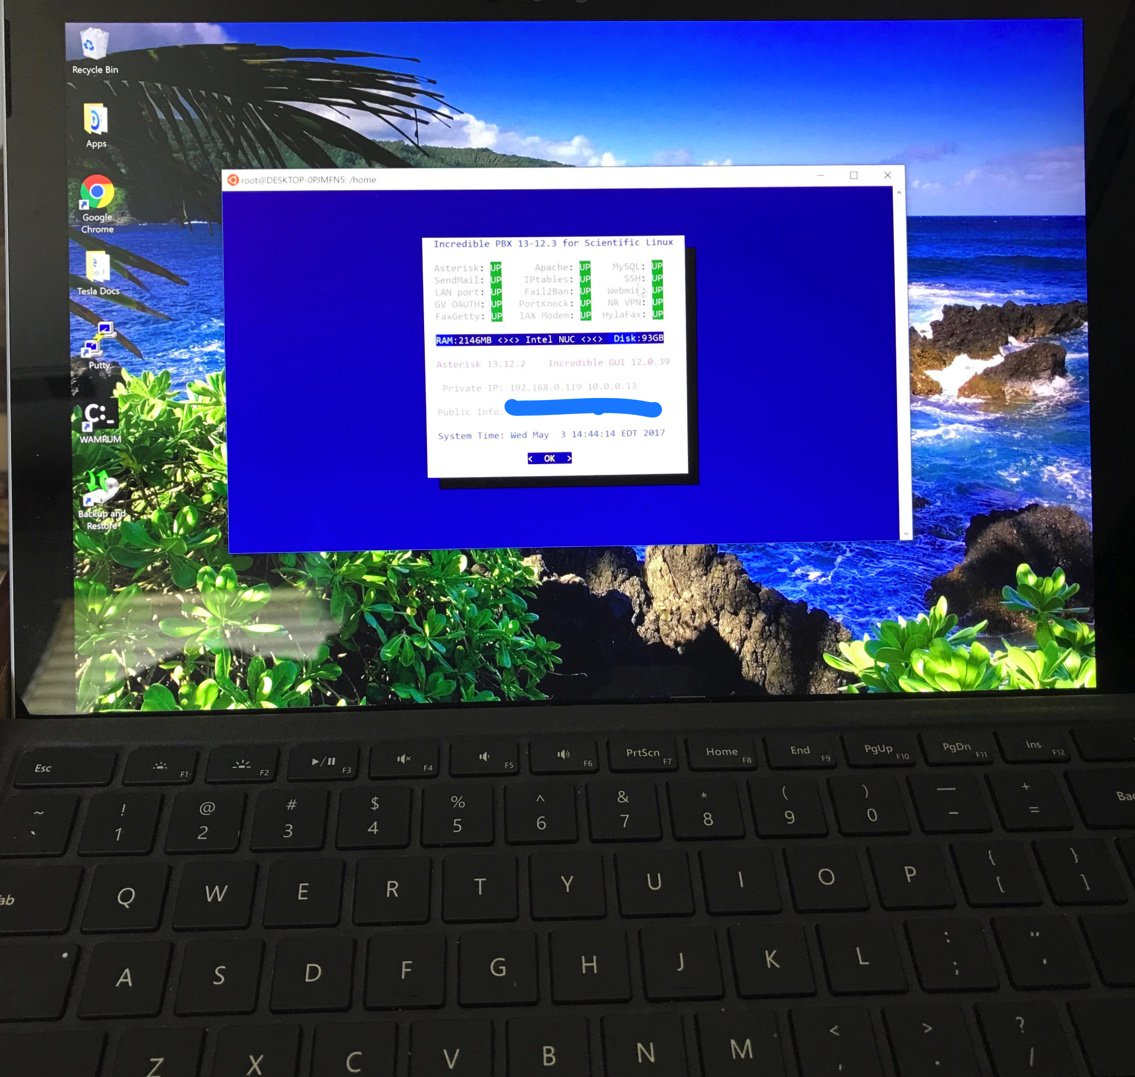 R I P  - SurfacePro + Windows10 + Ubuntu | PIAF - Your own